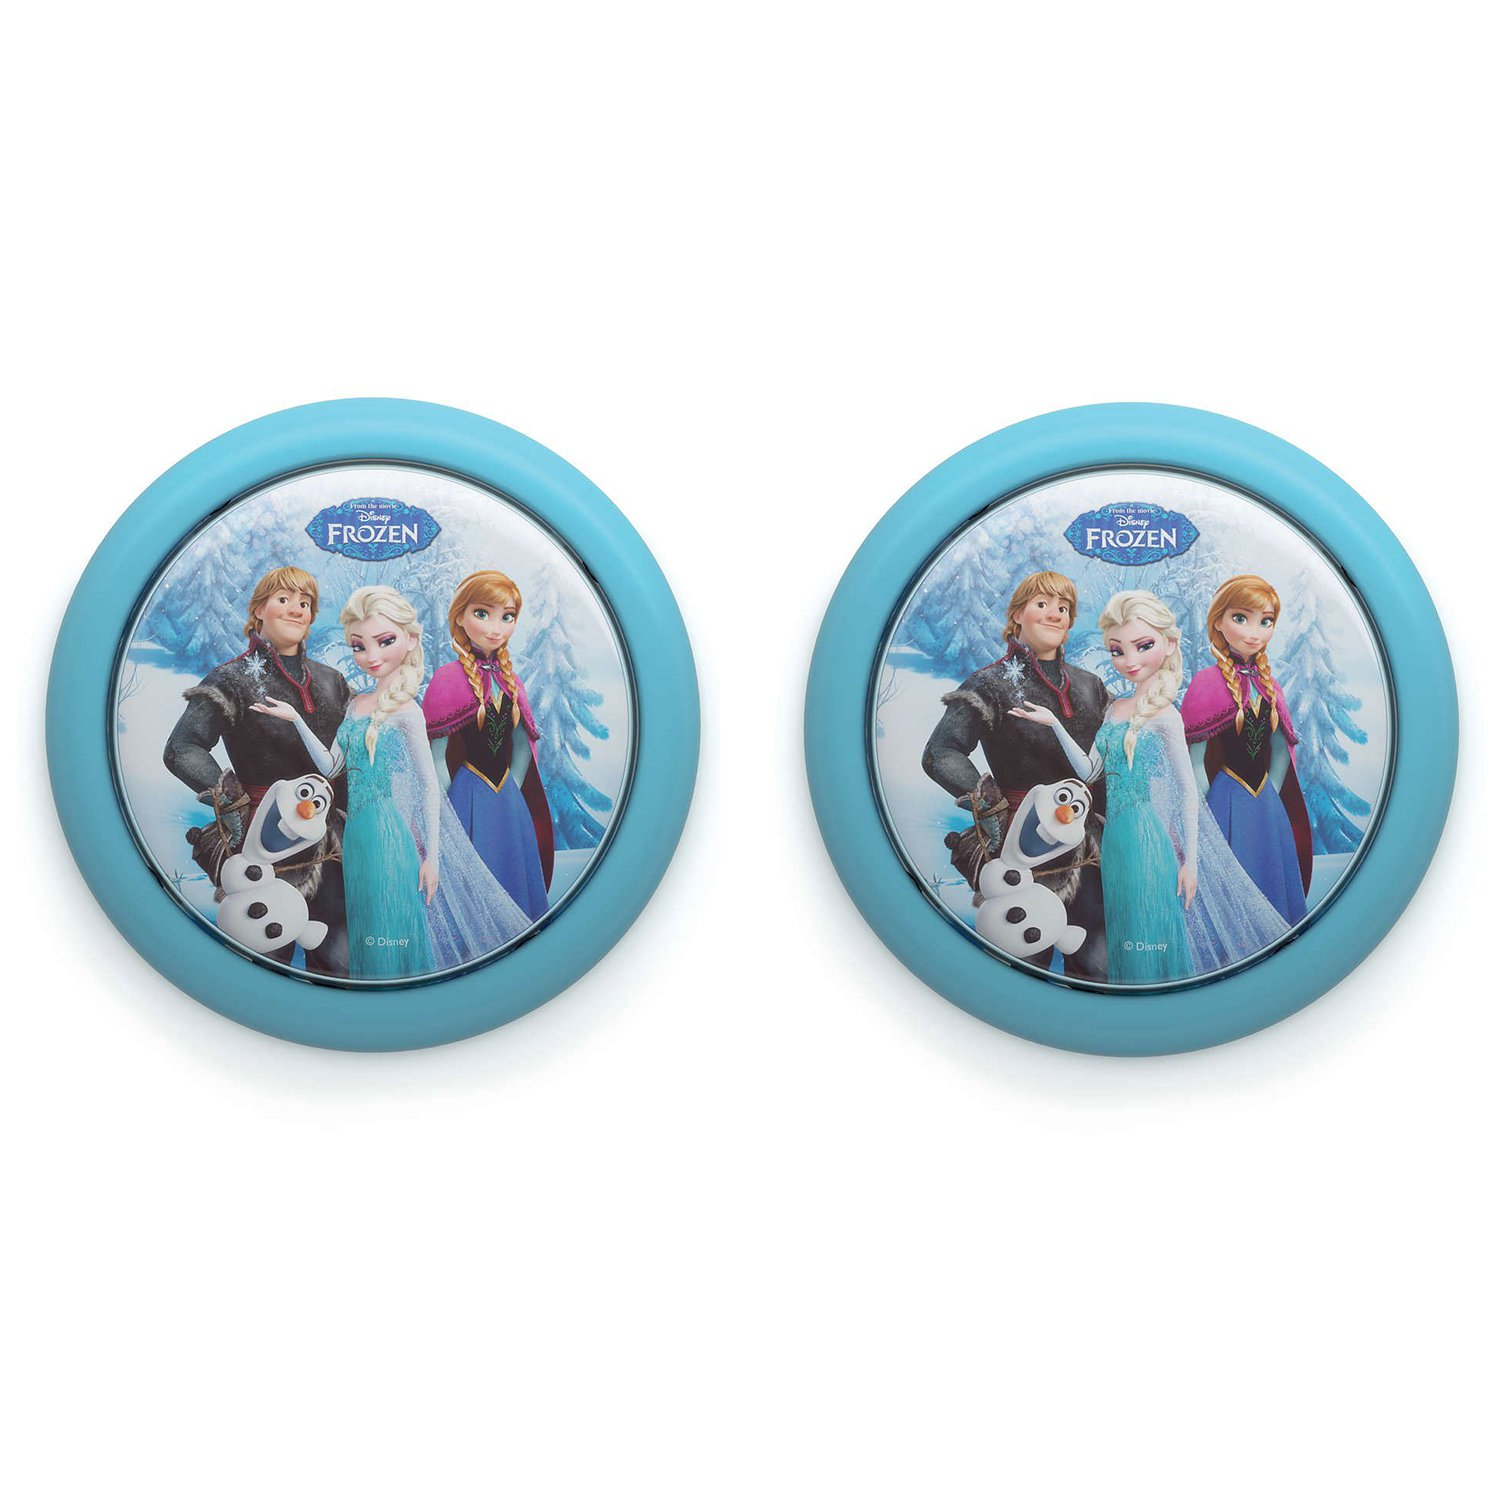 Philips Disney Frozen Elsa Anna Olaf Battery LED Push Touch Night Light (2 Pack)